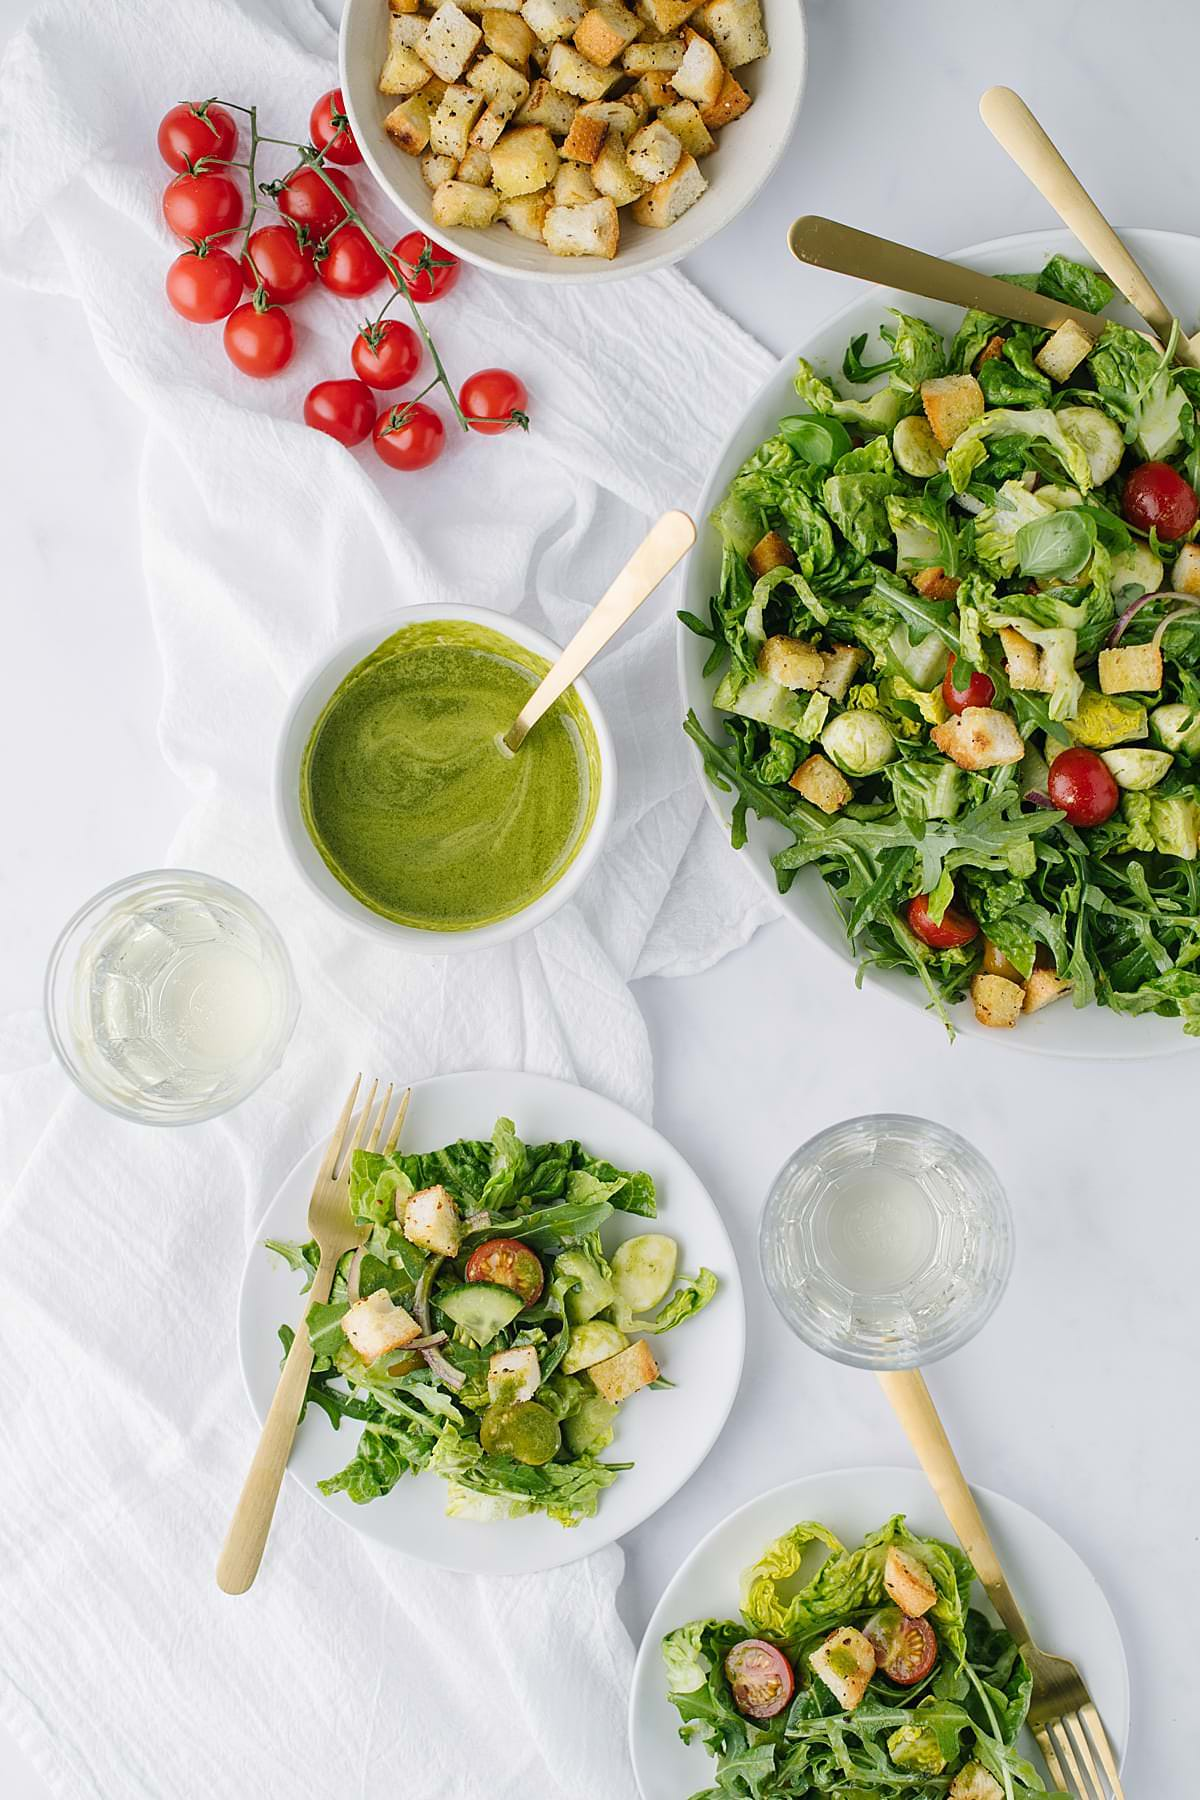 Arugula Caprese Salad with Lemon Basil Dressing and Homemade Croutons